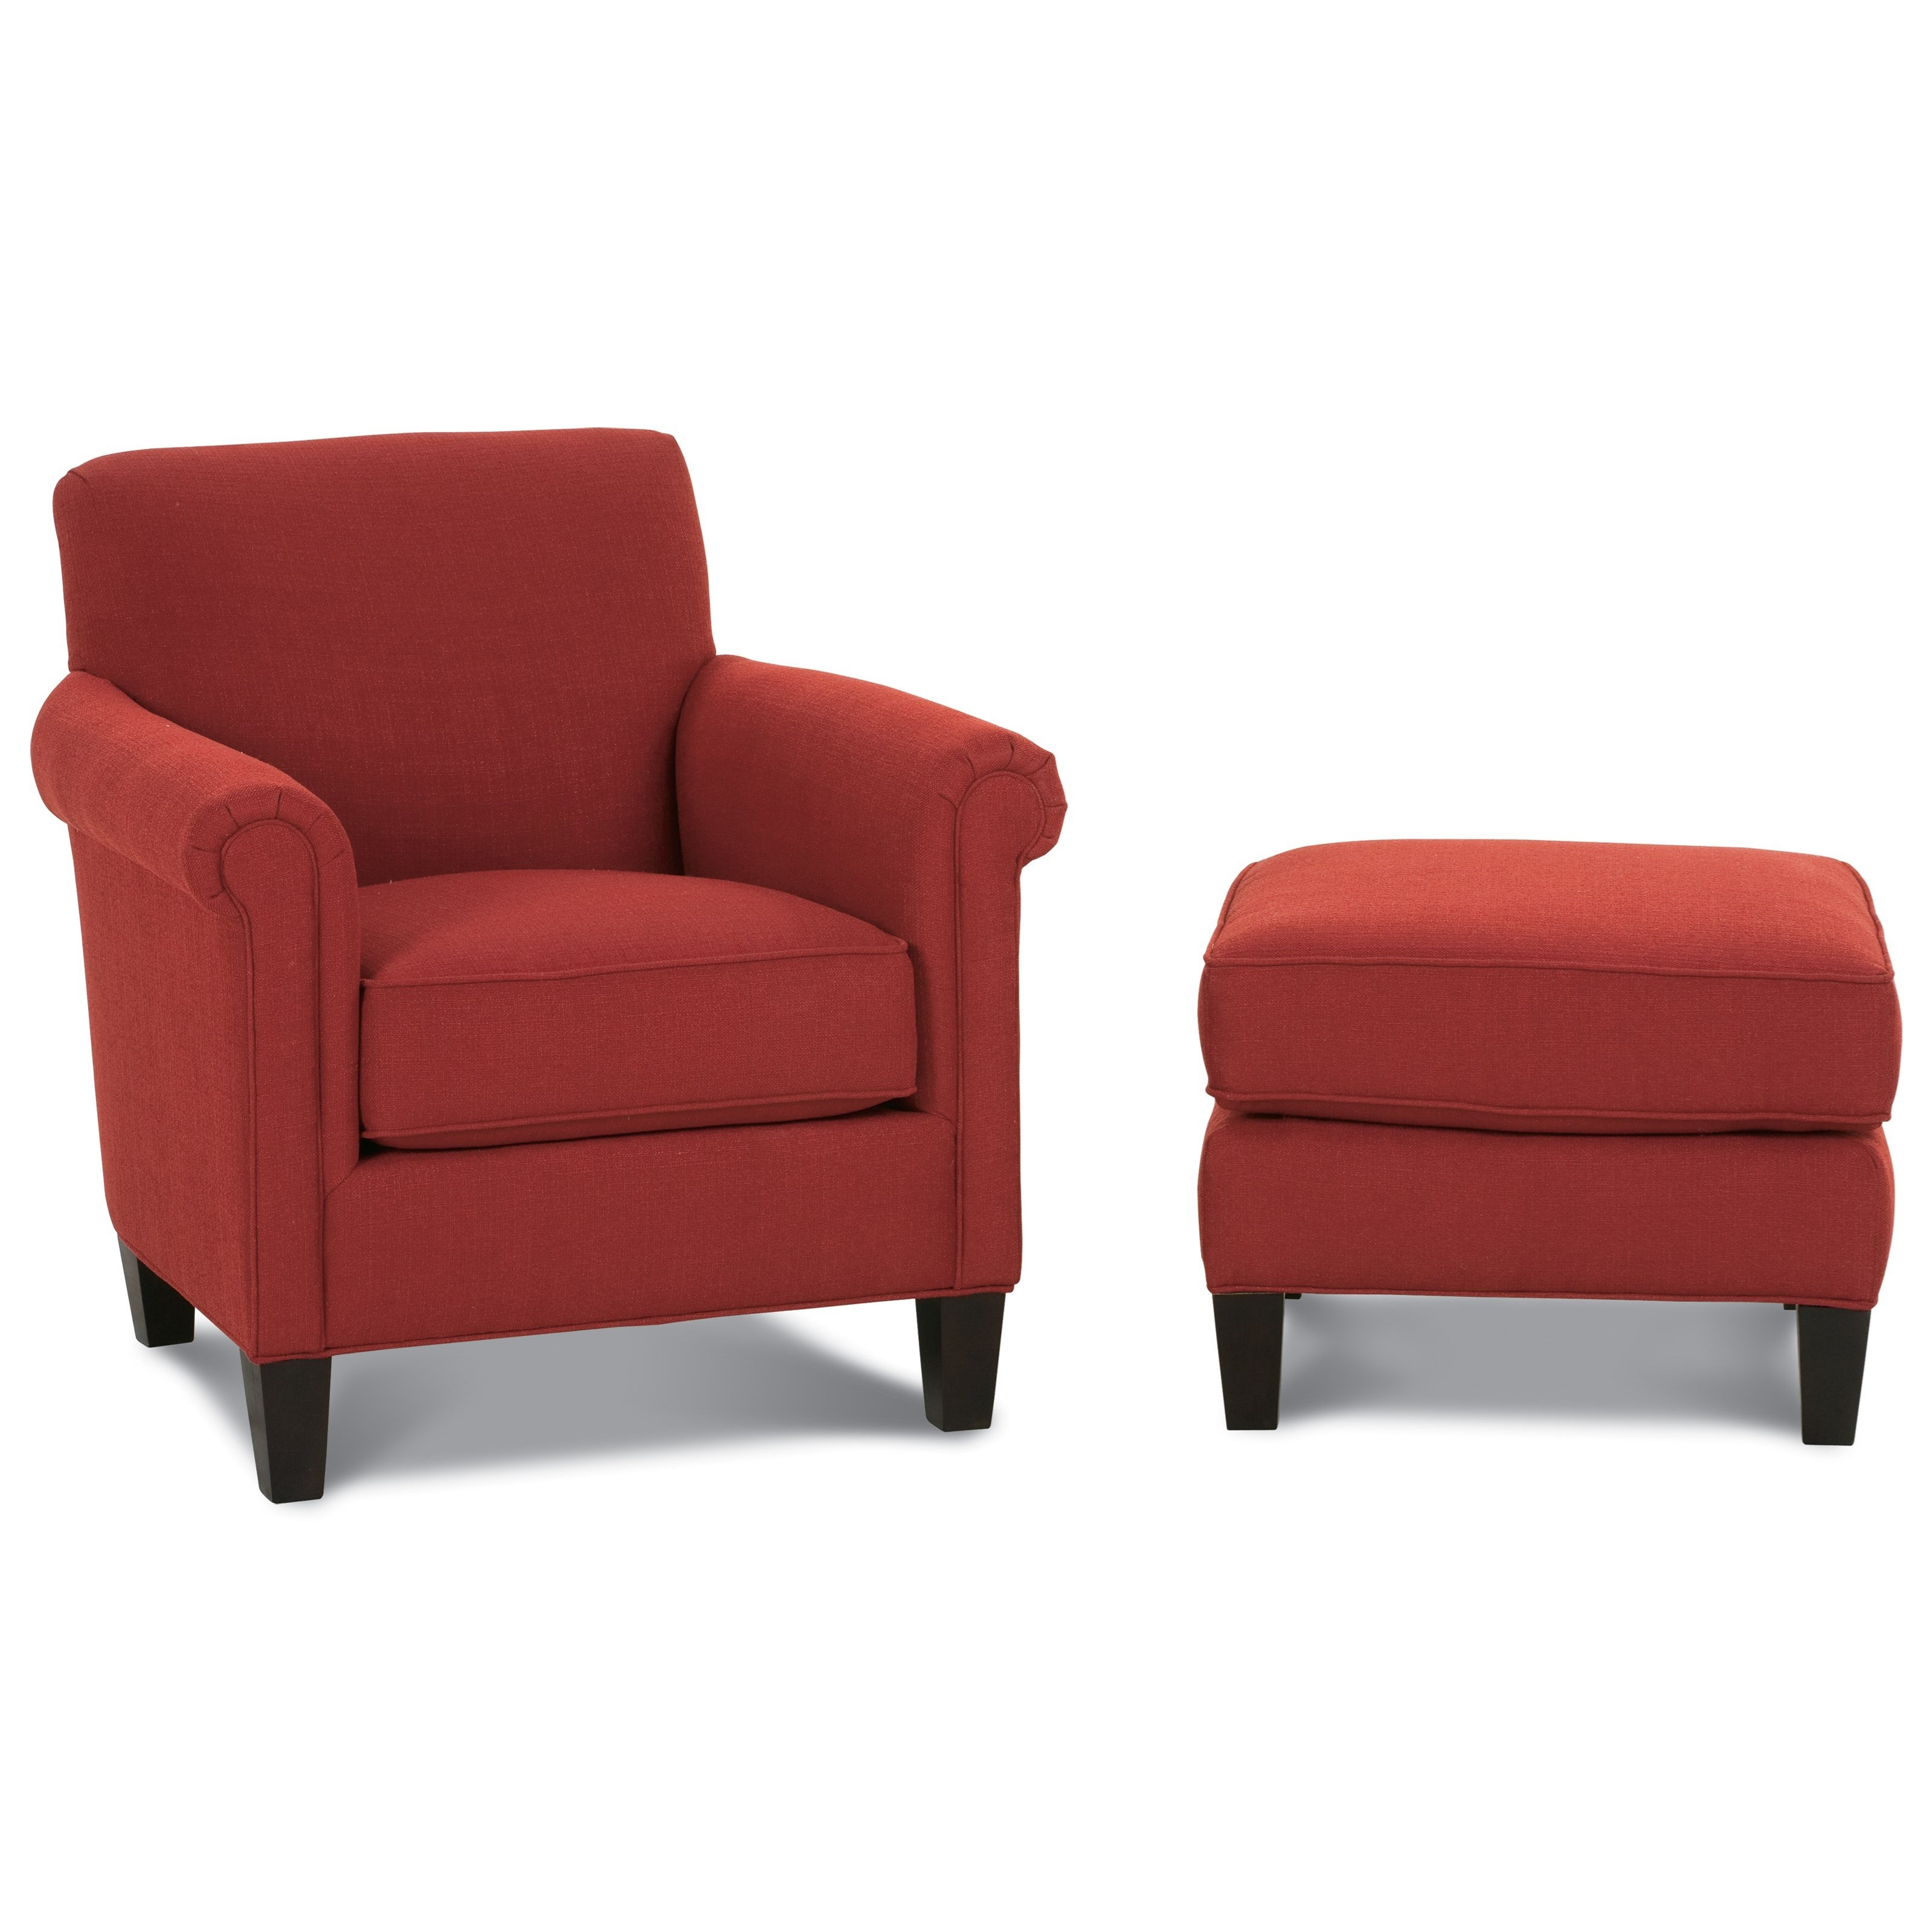 McGuire Chair and Ottoman